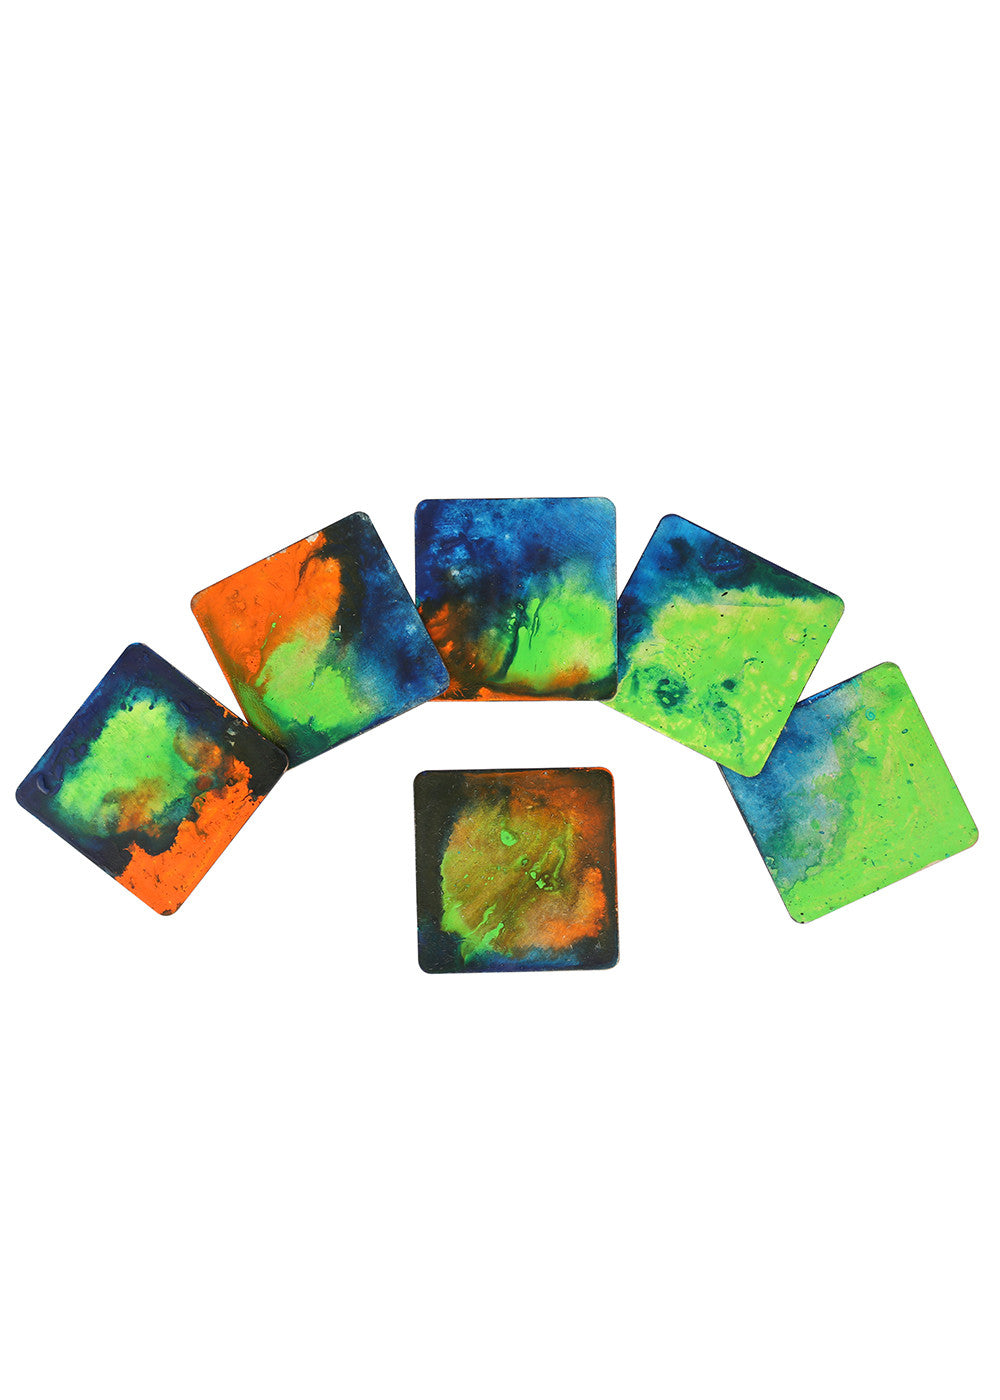 Hand-painted Igniting colors Coaster Set - RANGRAGE